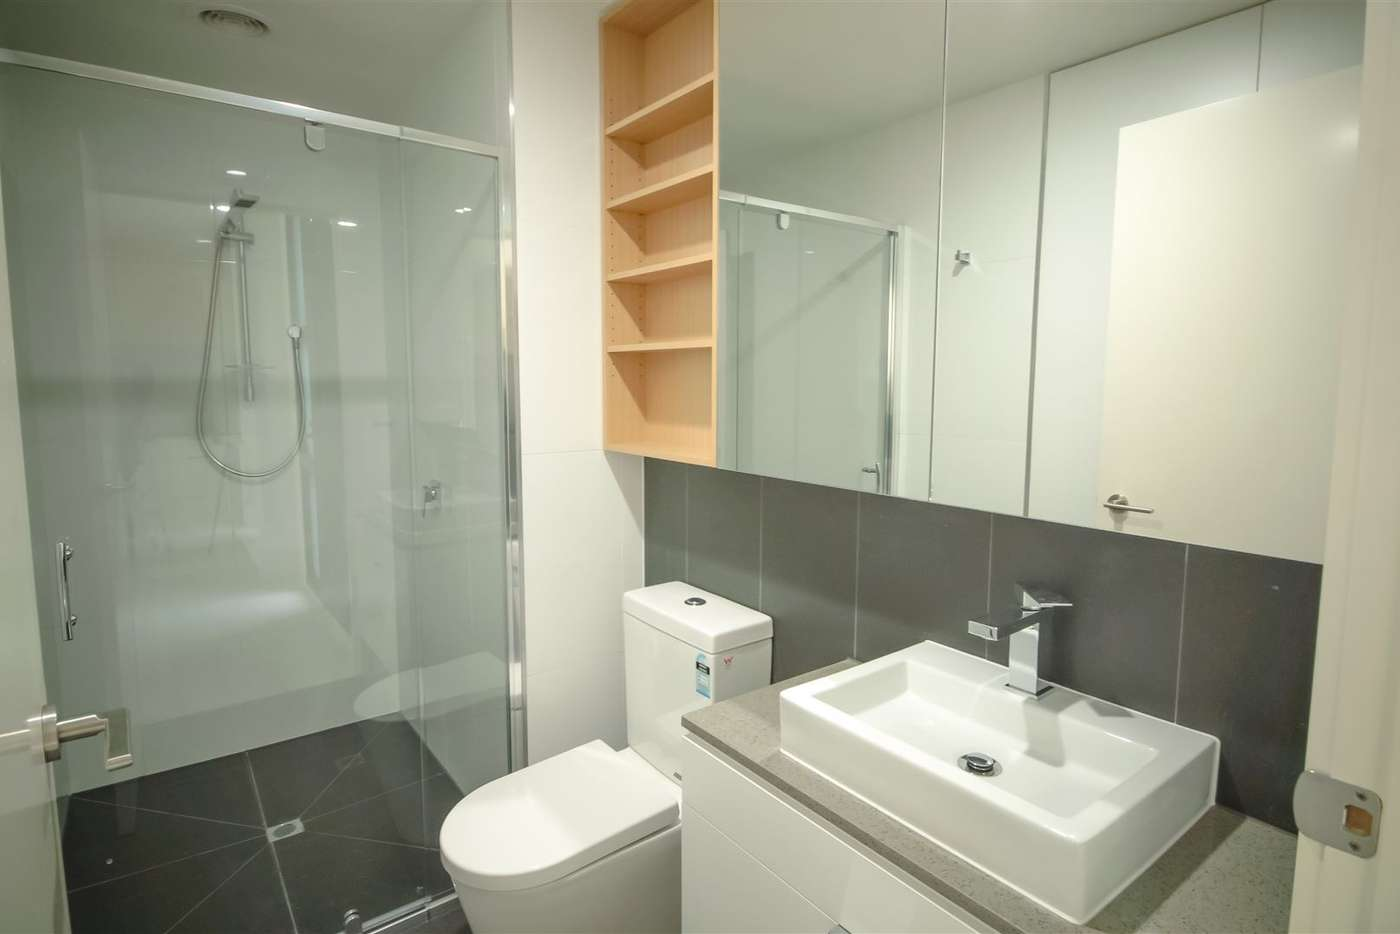 Sixth view of Homely apartment listing, 6/14 Eleanor Street, Footscray VIC 3011